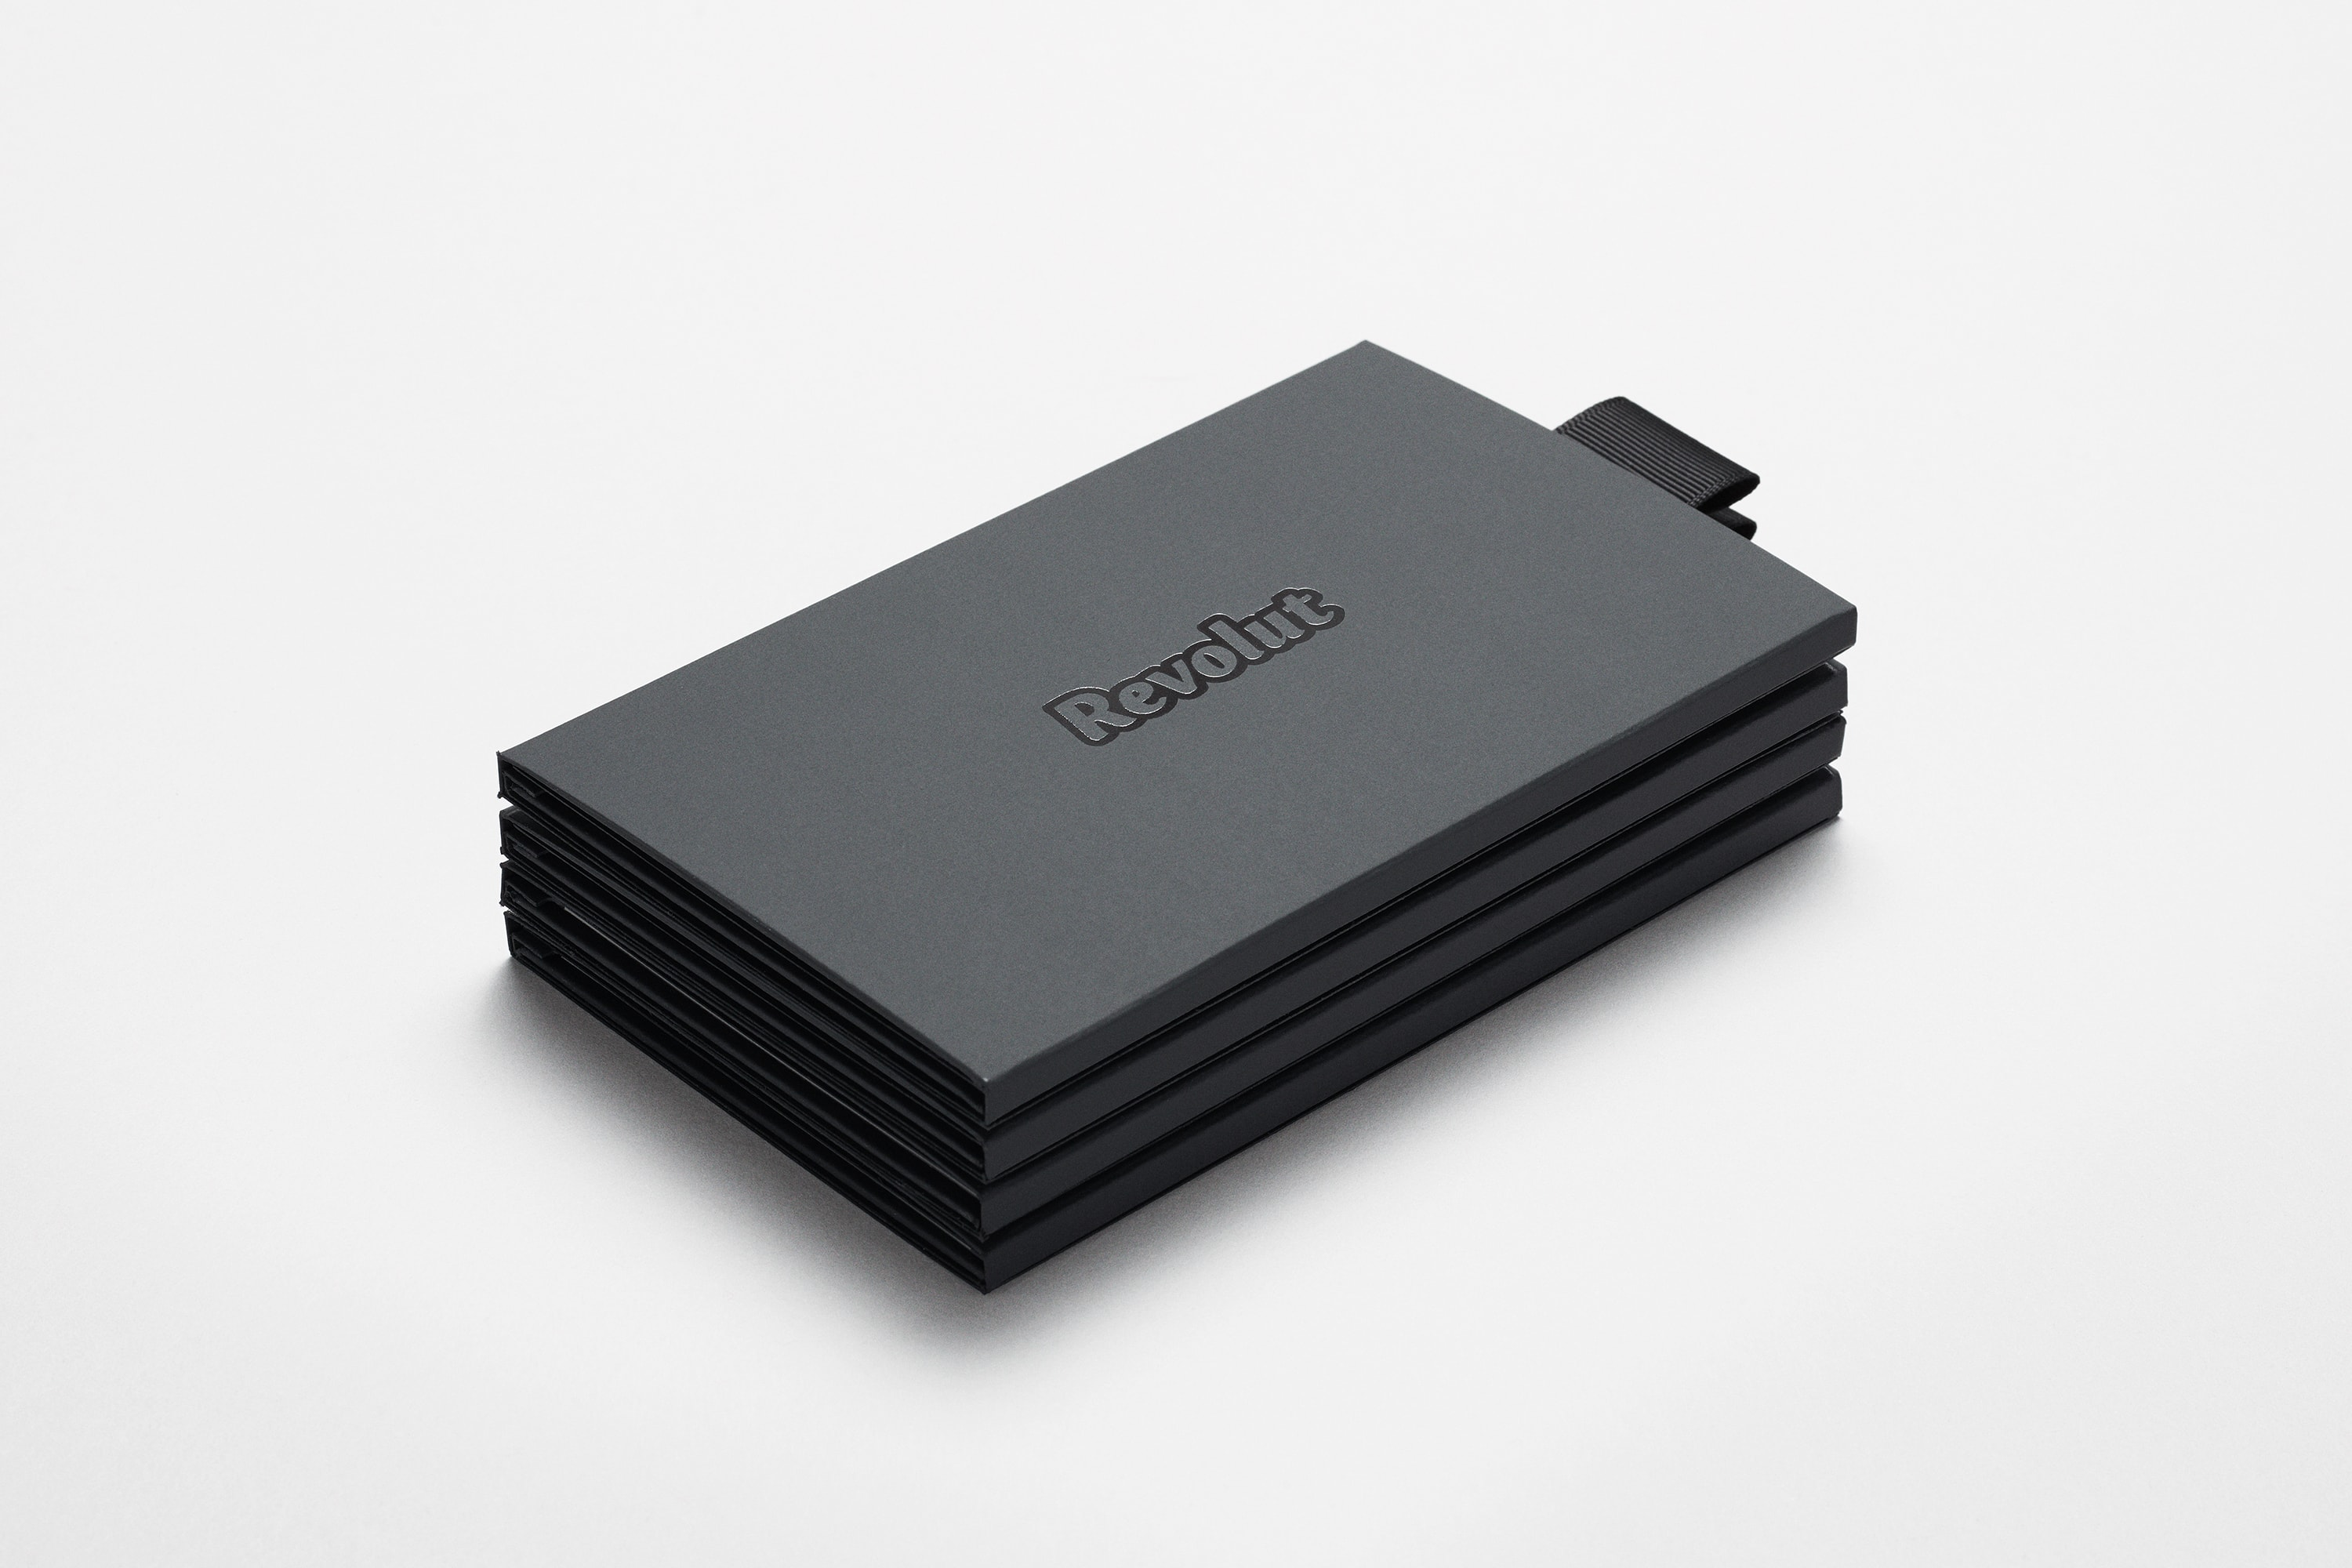 Perspective view of Revolut Premium bank card packaging in black with the revolut logo shown.